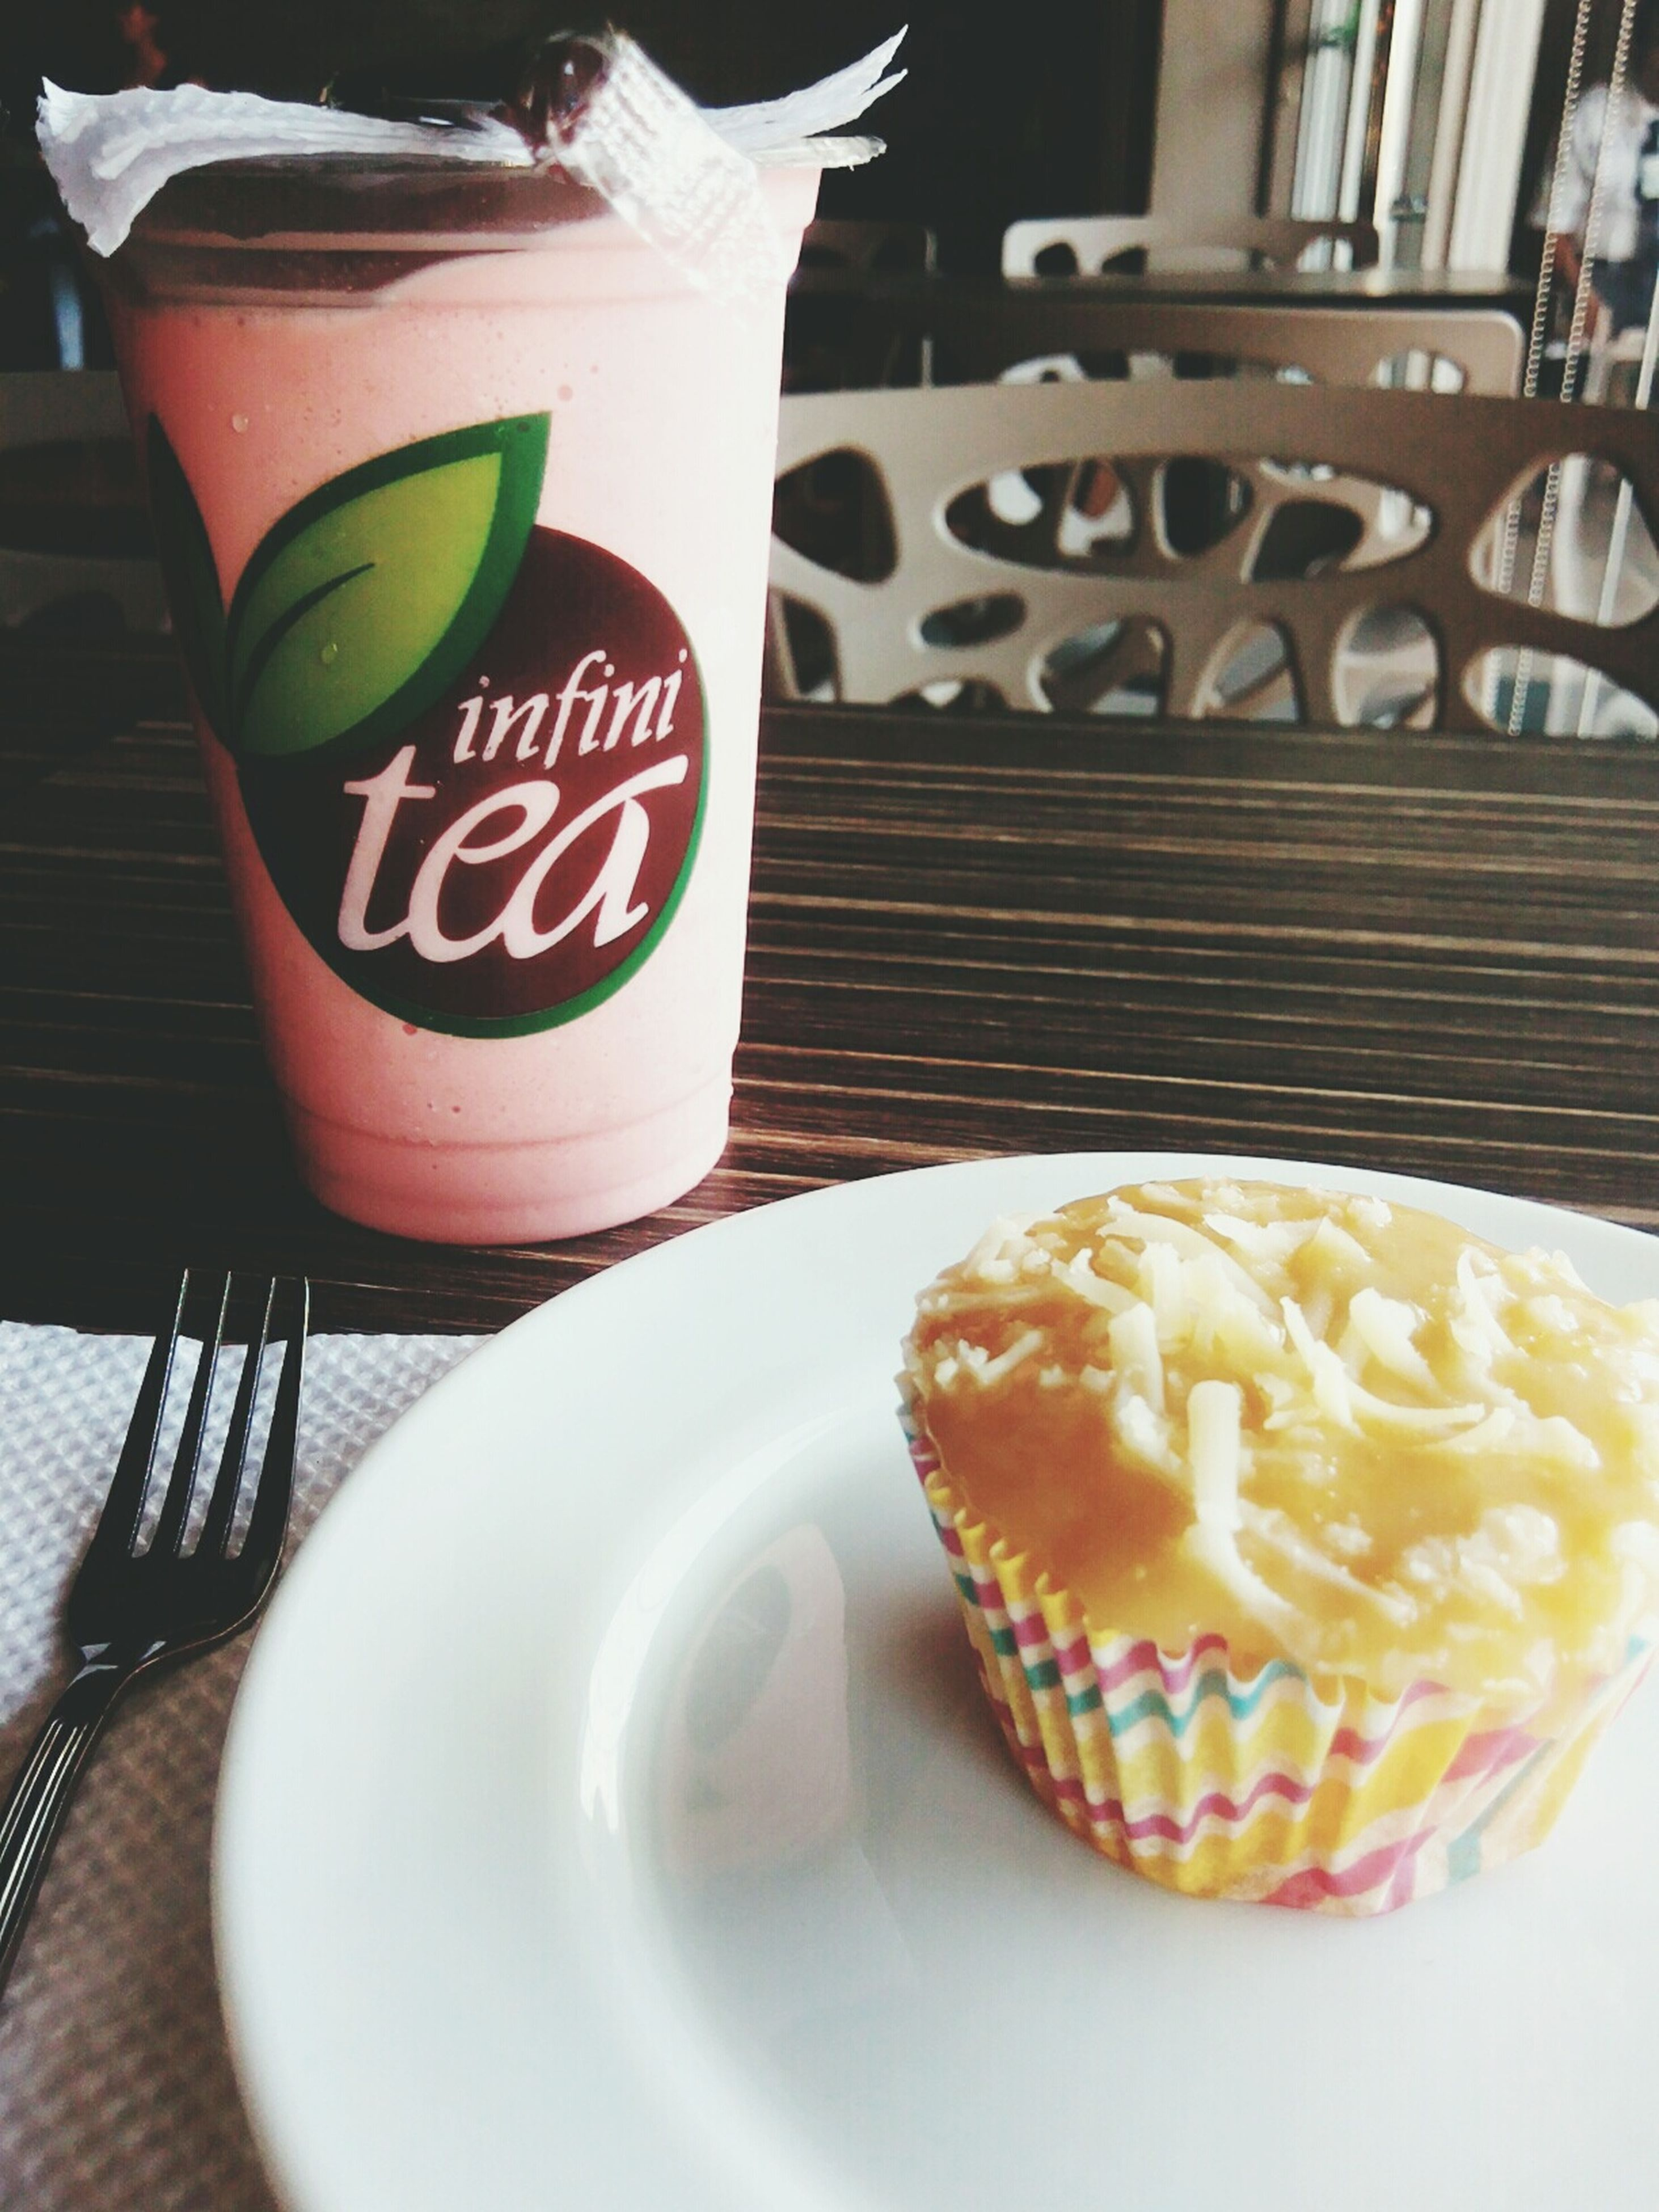 food and drink, sweet food, food, freshness, indoors, dessert, table, still life, ready-to-eat, unhealthy eating, indulgence, plate, cake, close-up, temptation, serving size, drink, coffee cup, refreshment, focus on foreground